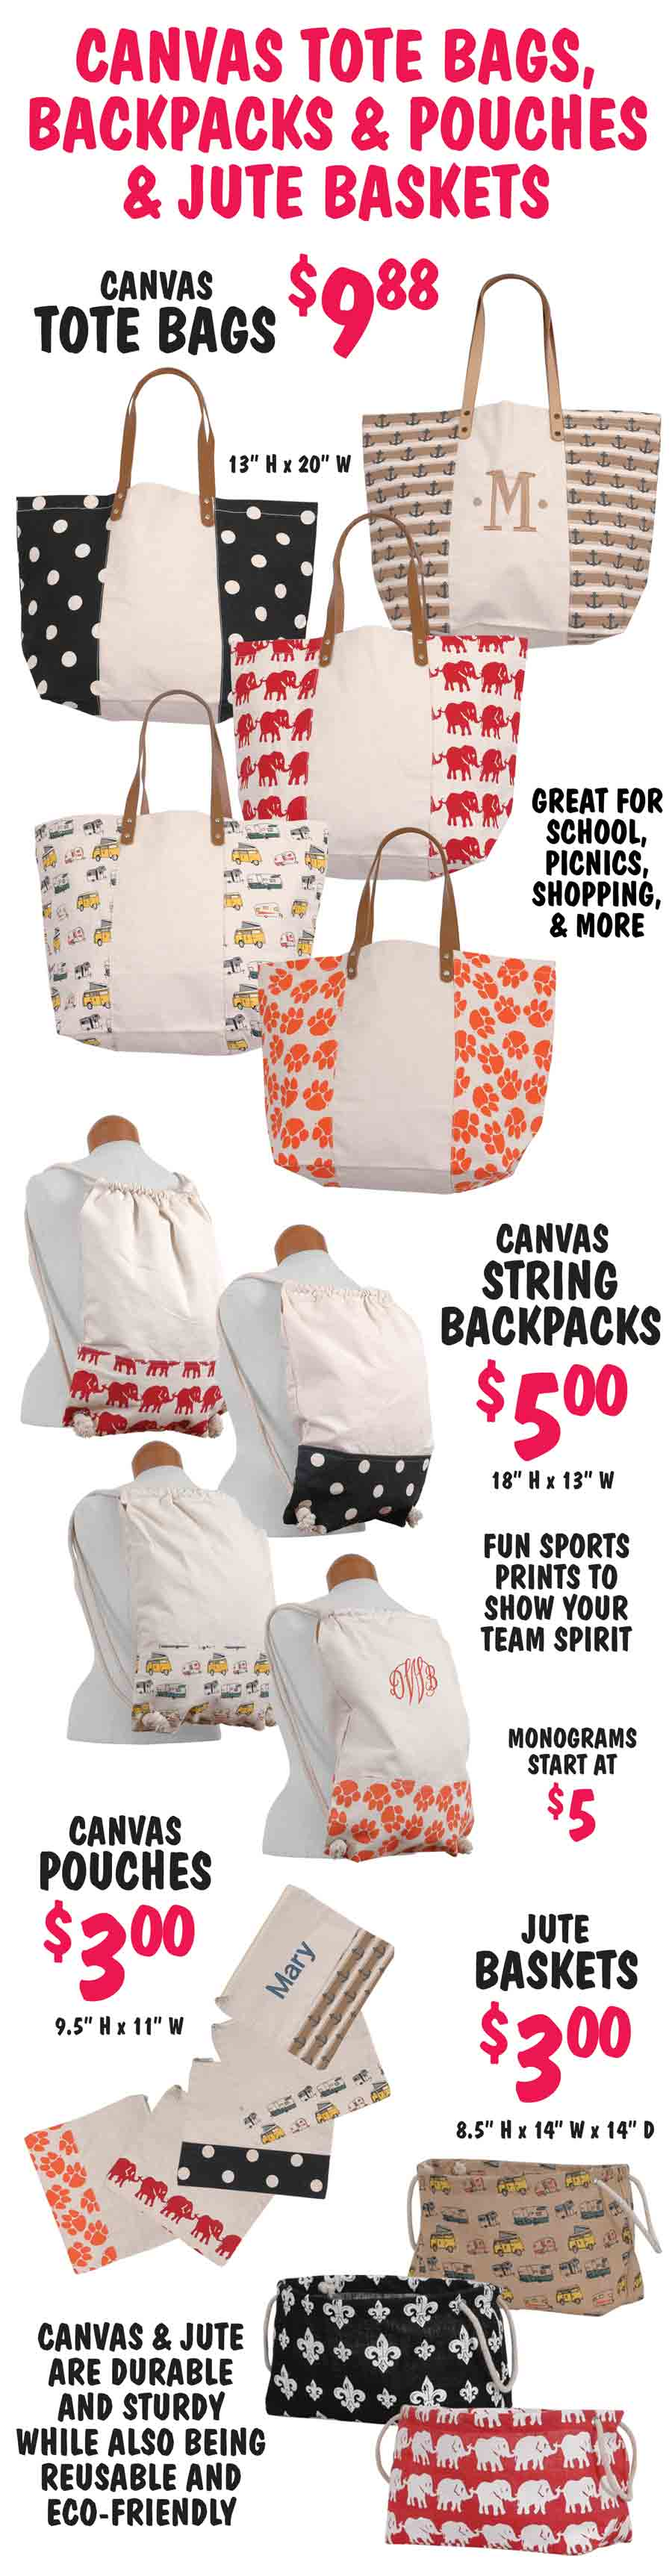 Canvas Tote Bags, String Backpacks, and Cosmetic Pouches